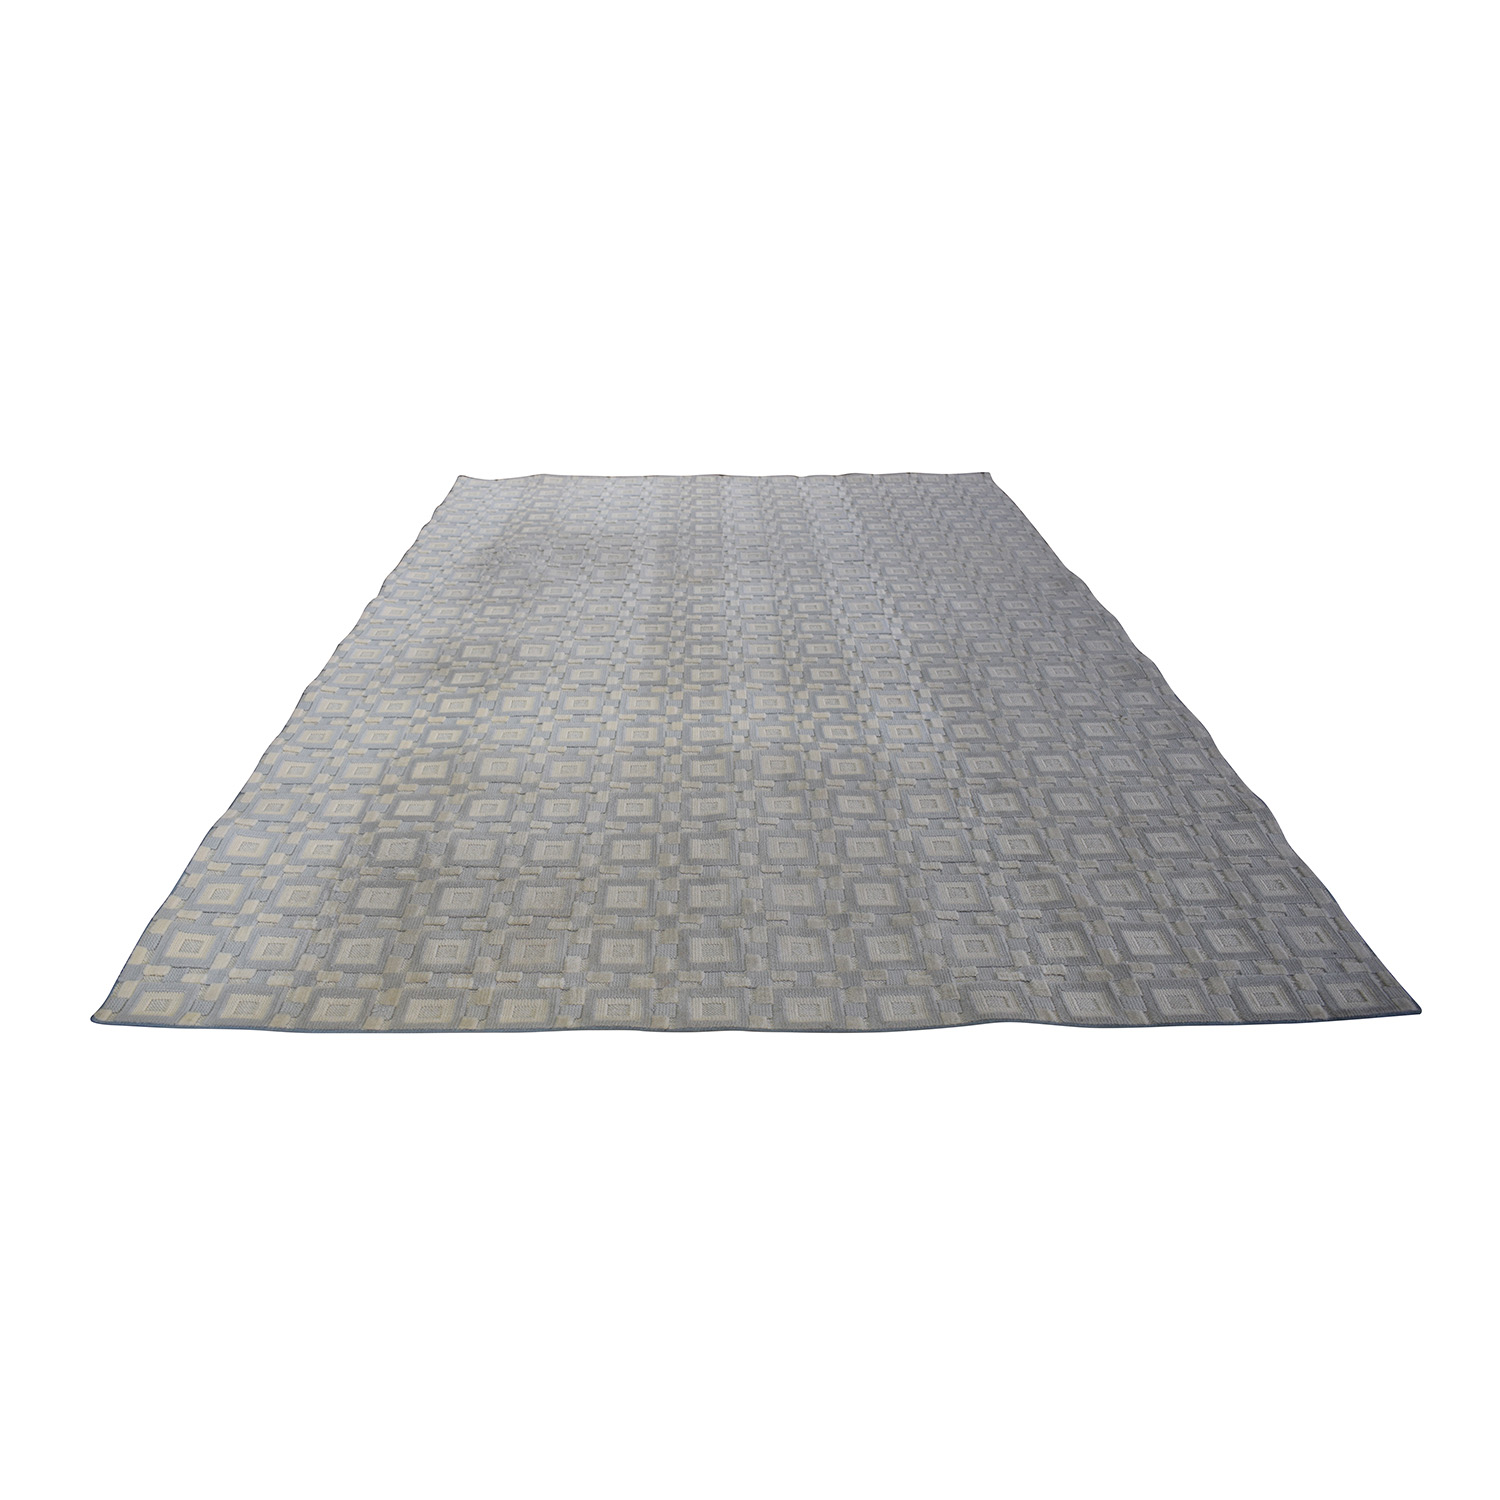 Gray and White 9x12 Natural Fiber Rug for sale